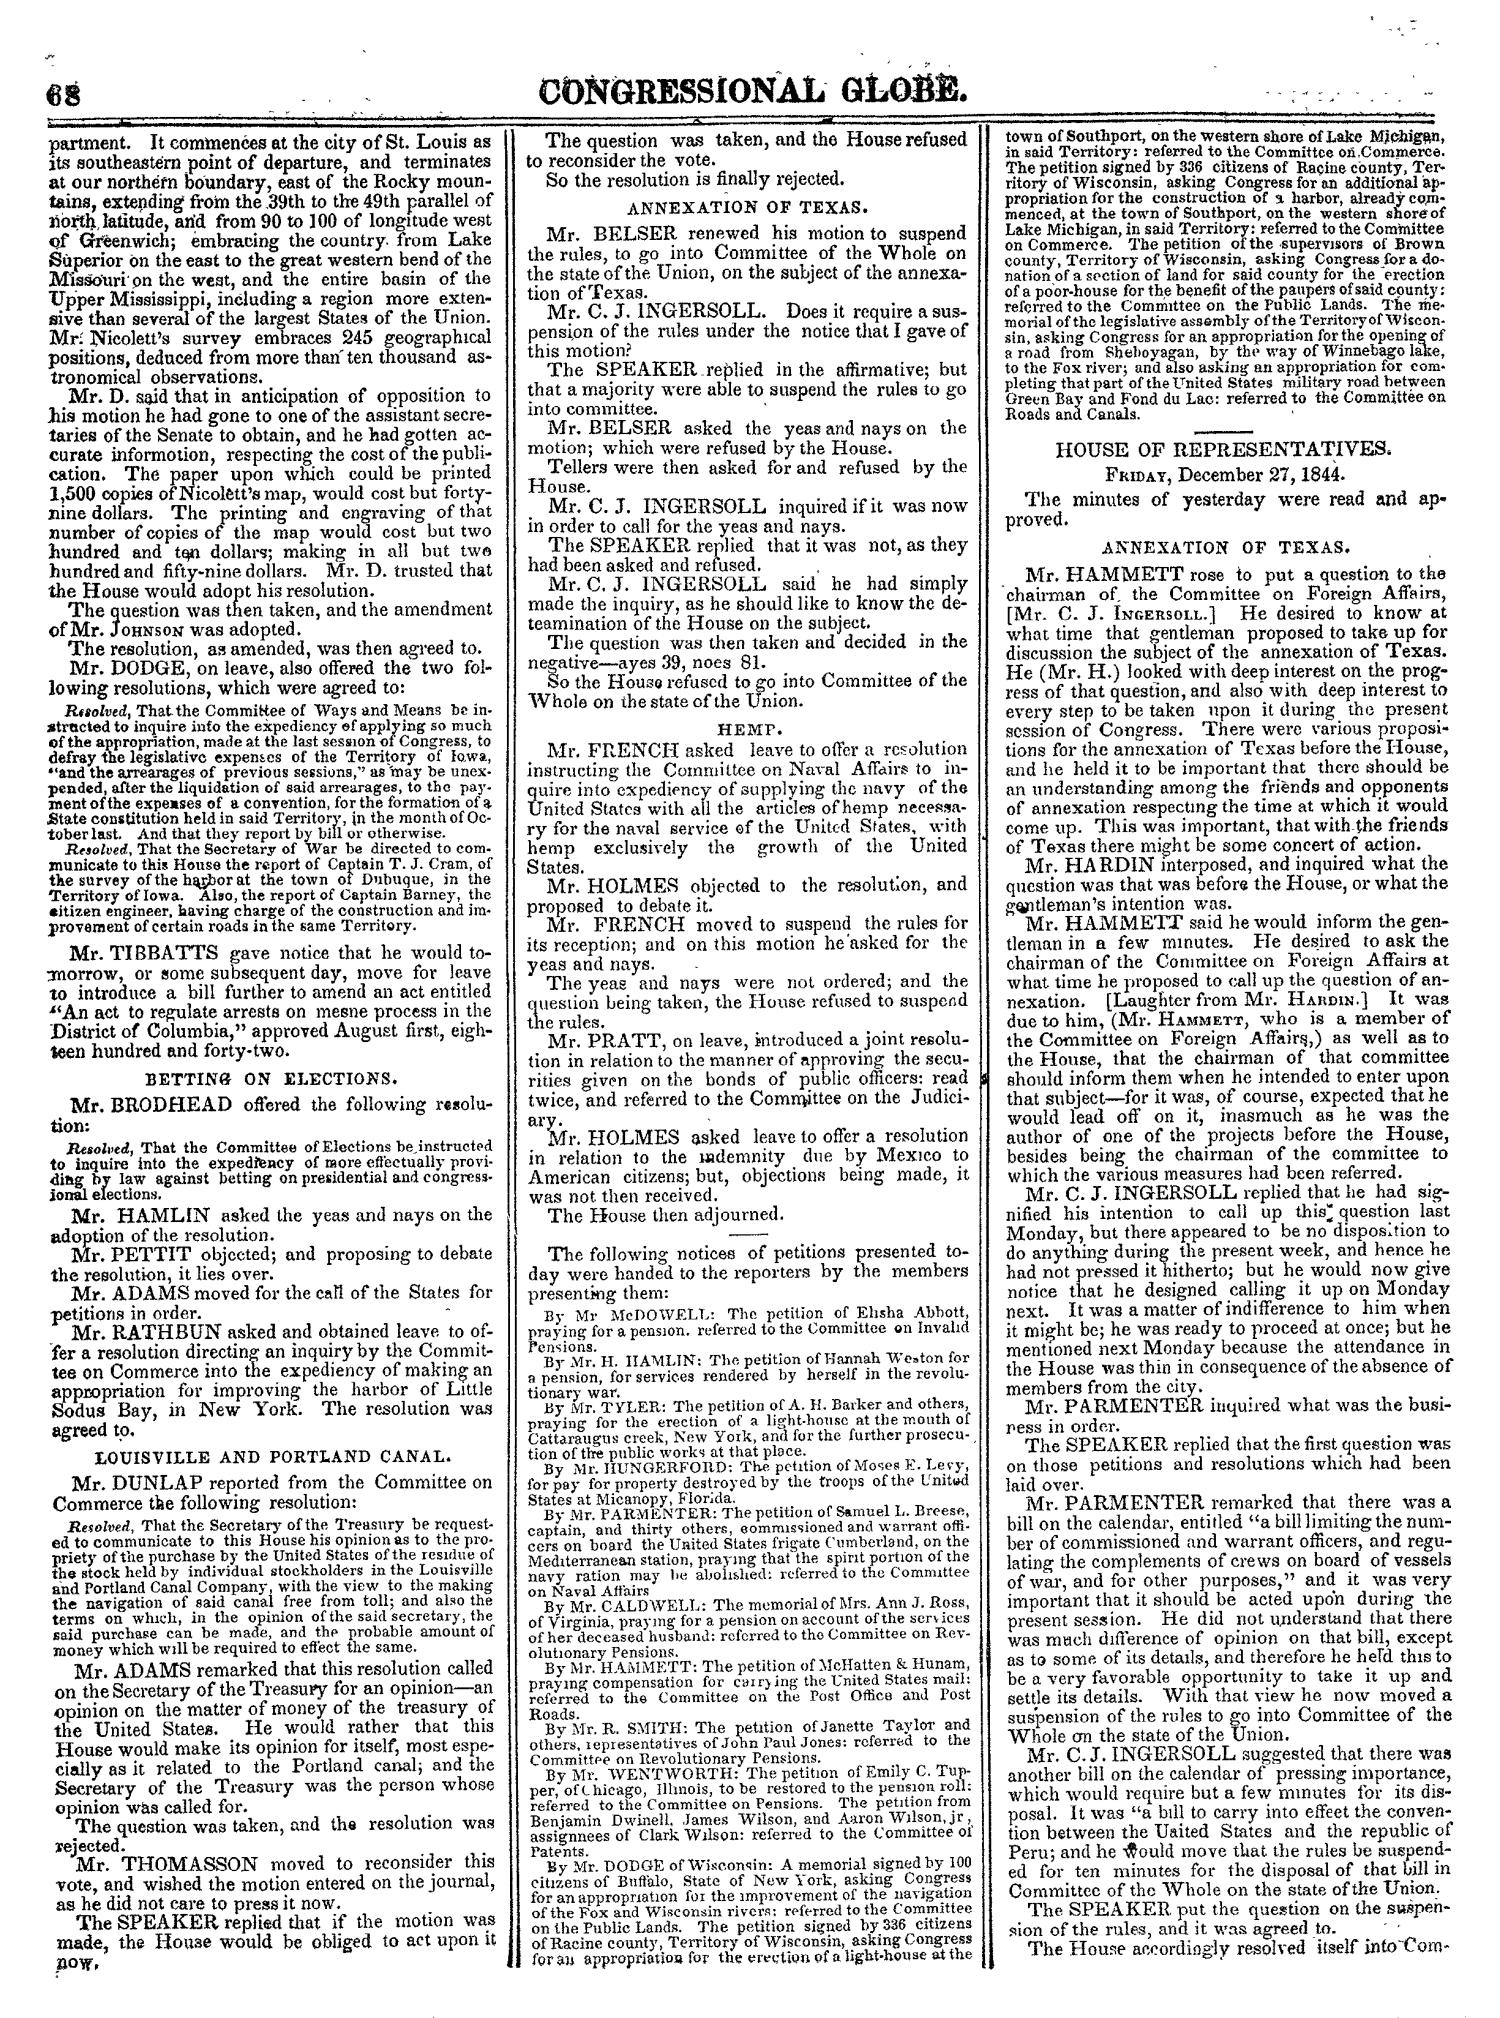 The Congressional Globe, Volume 14: Twenty-Eighth Congress, Second Session                                                                                                      68